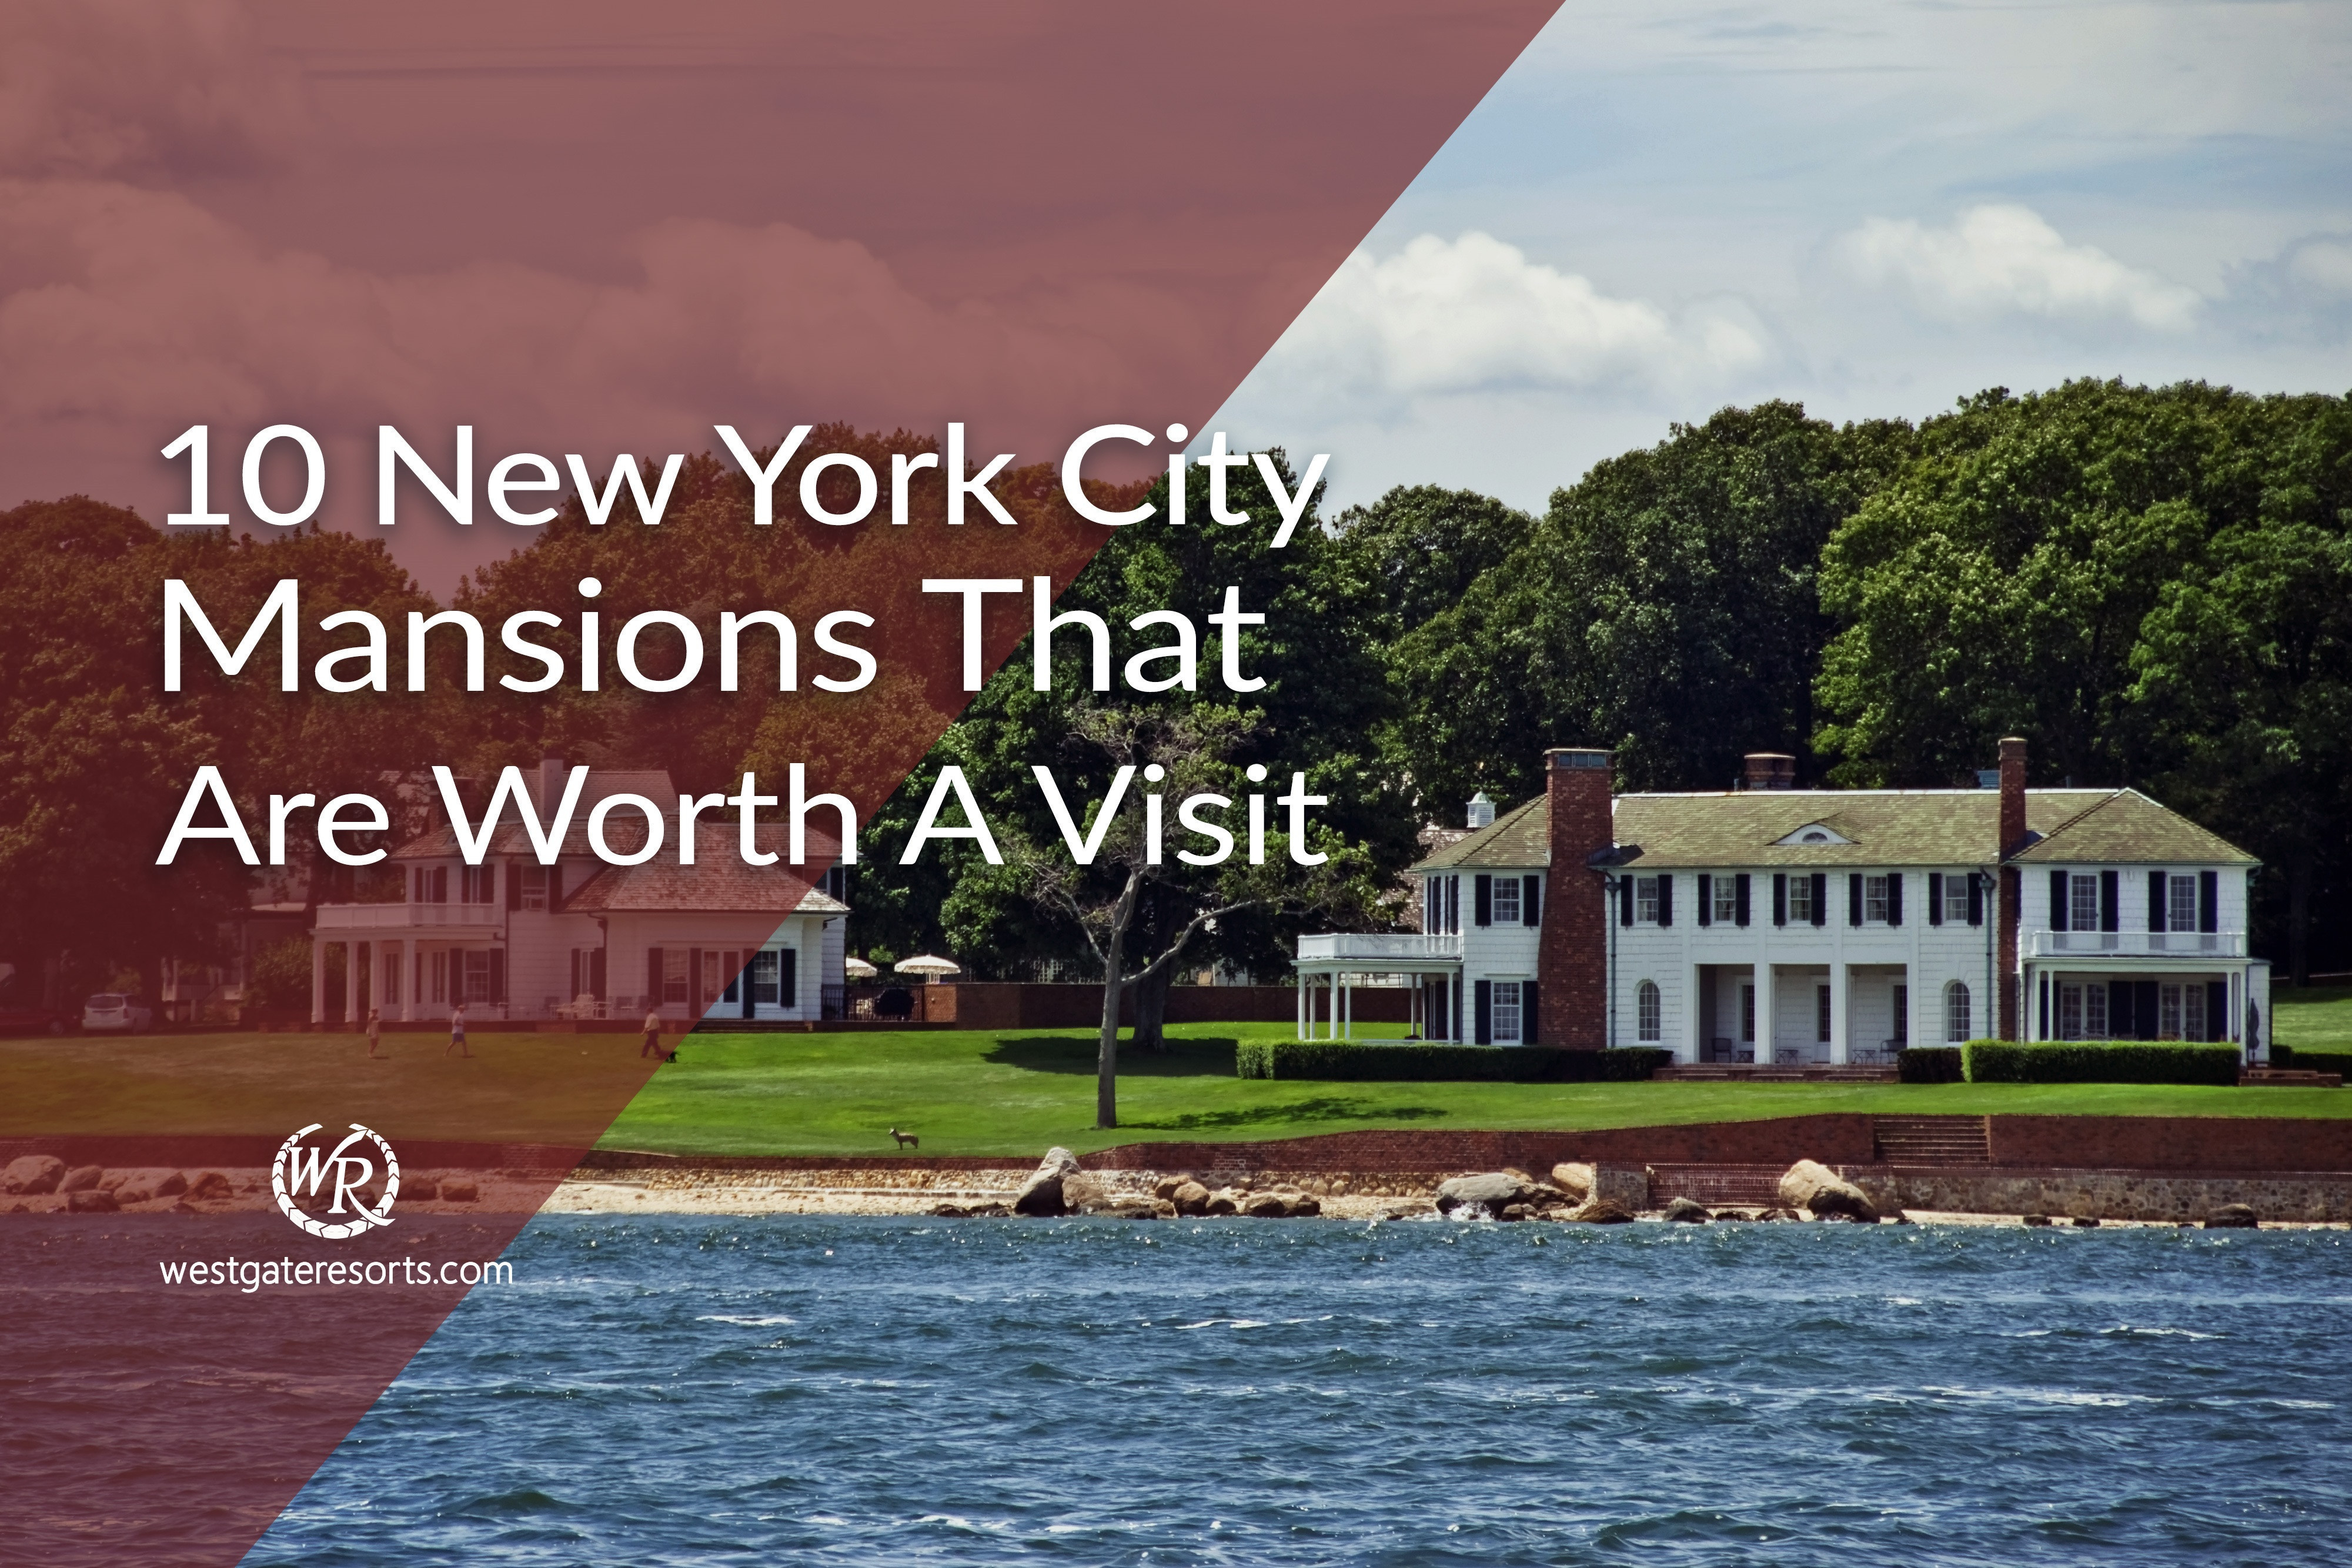 10 New York City Mansions That Are Worth A Visit